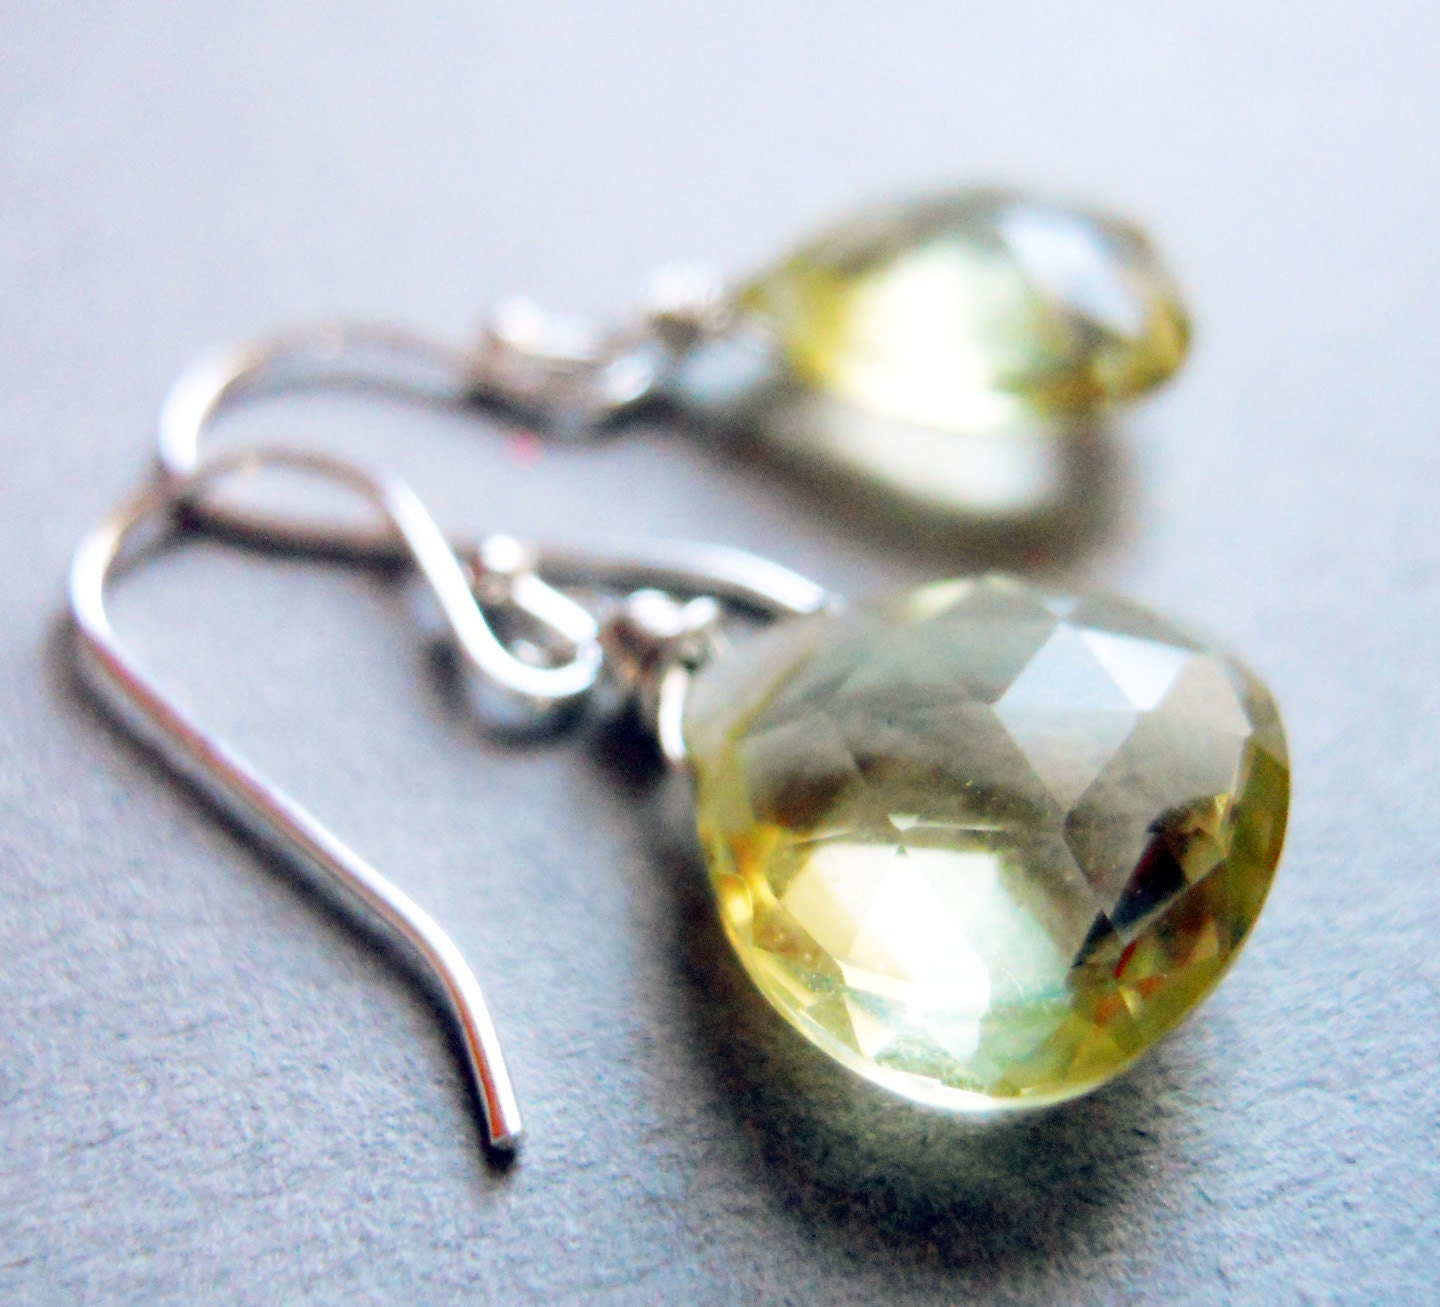 Lemon drop lemon quartz earrings - $38.00 USD